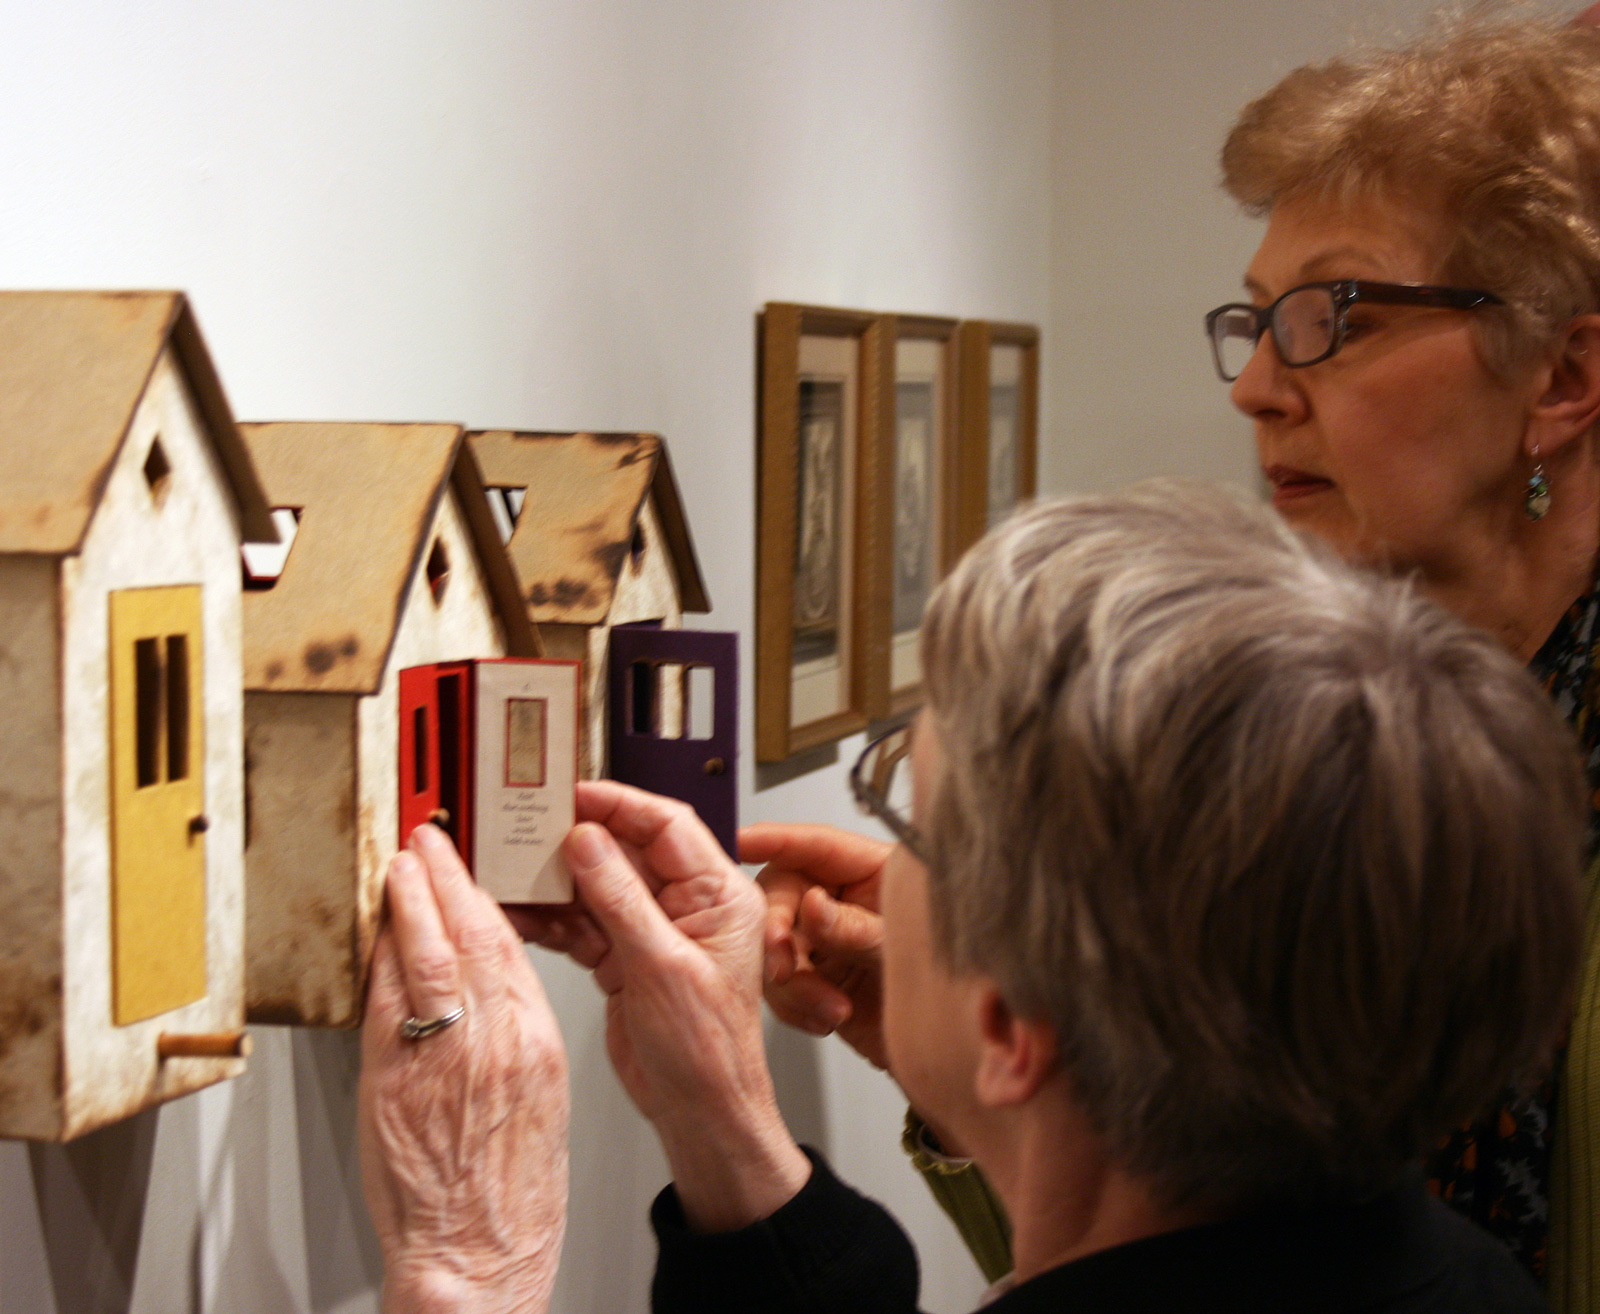 Bird-Houses-Installation-View-13_BC-with-Viewer3.jpg